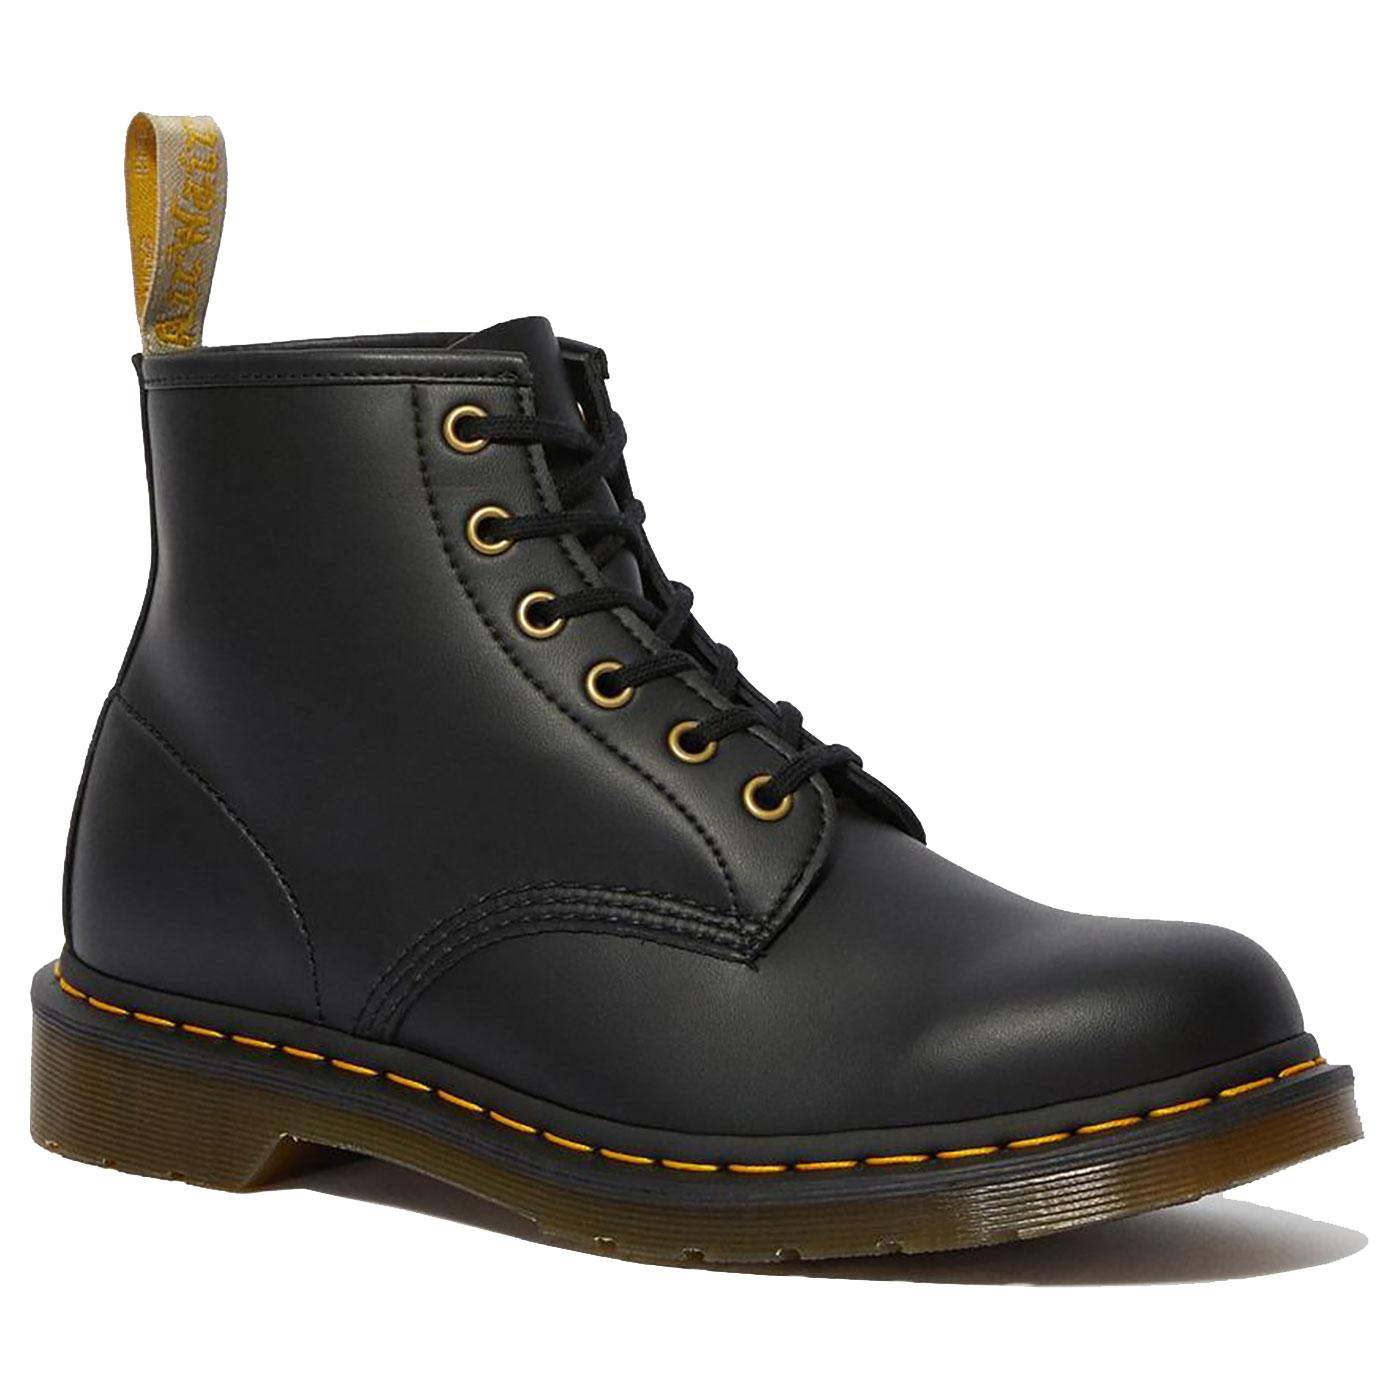 Vegan 101 DR MARTENS Men's Retro Ankle Boots